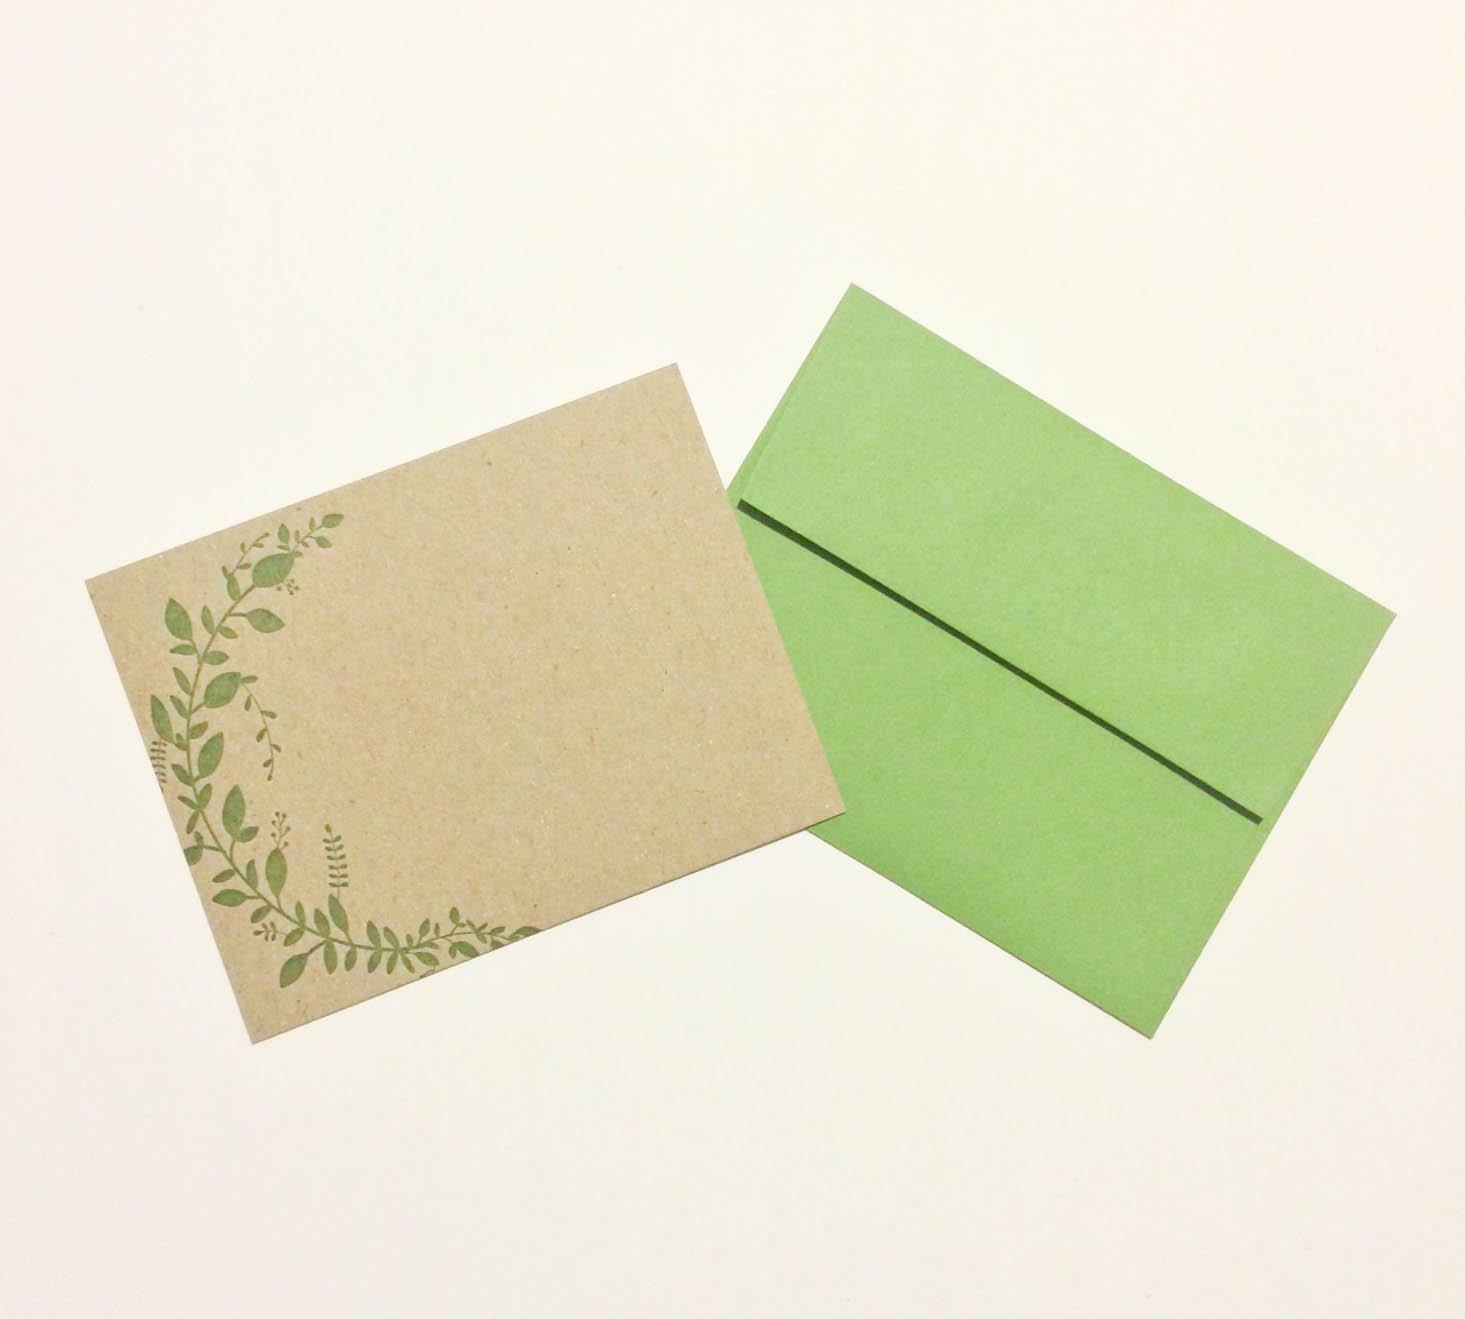 idea-chic-stationery-september-2016-leaves